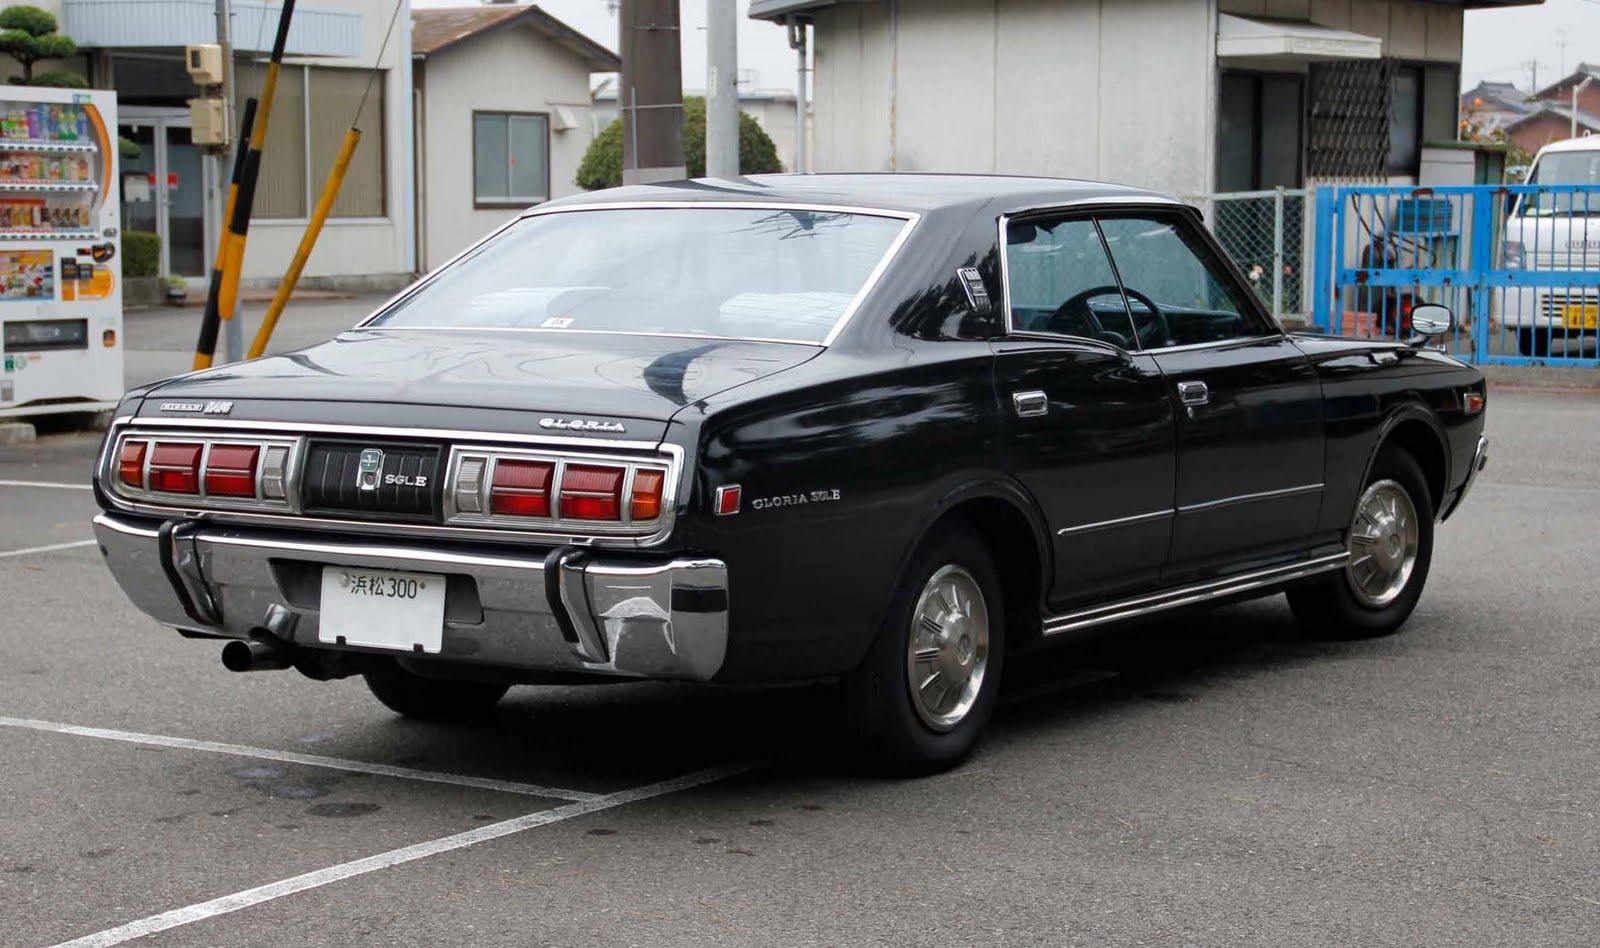 Nissan Cedric, Gloria, 330, nostalgic, oldschool, old cars, classic, japanese, photos, images, jdm